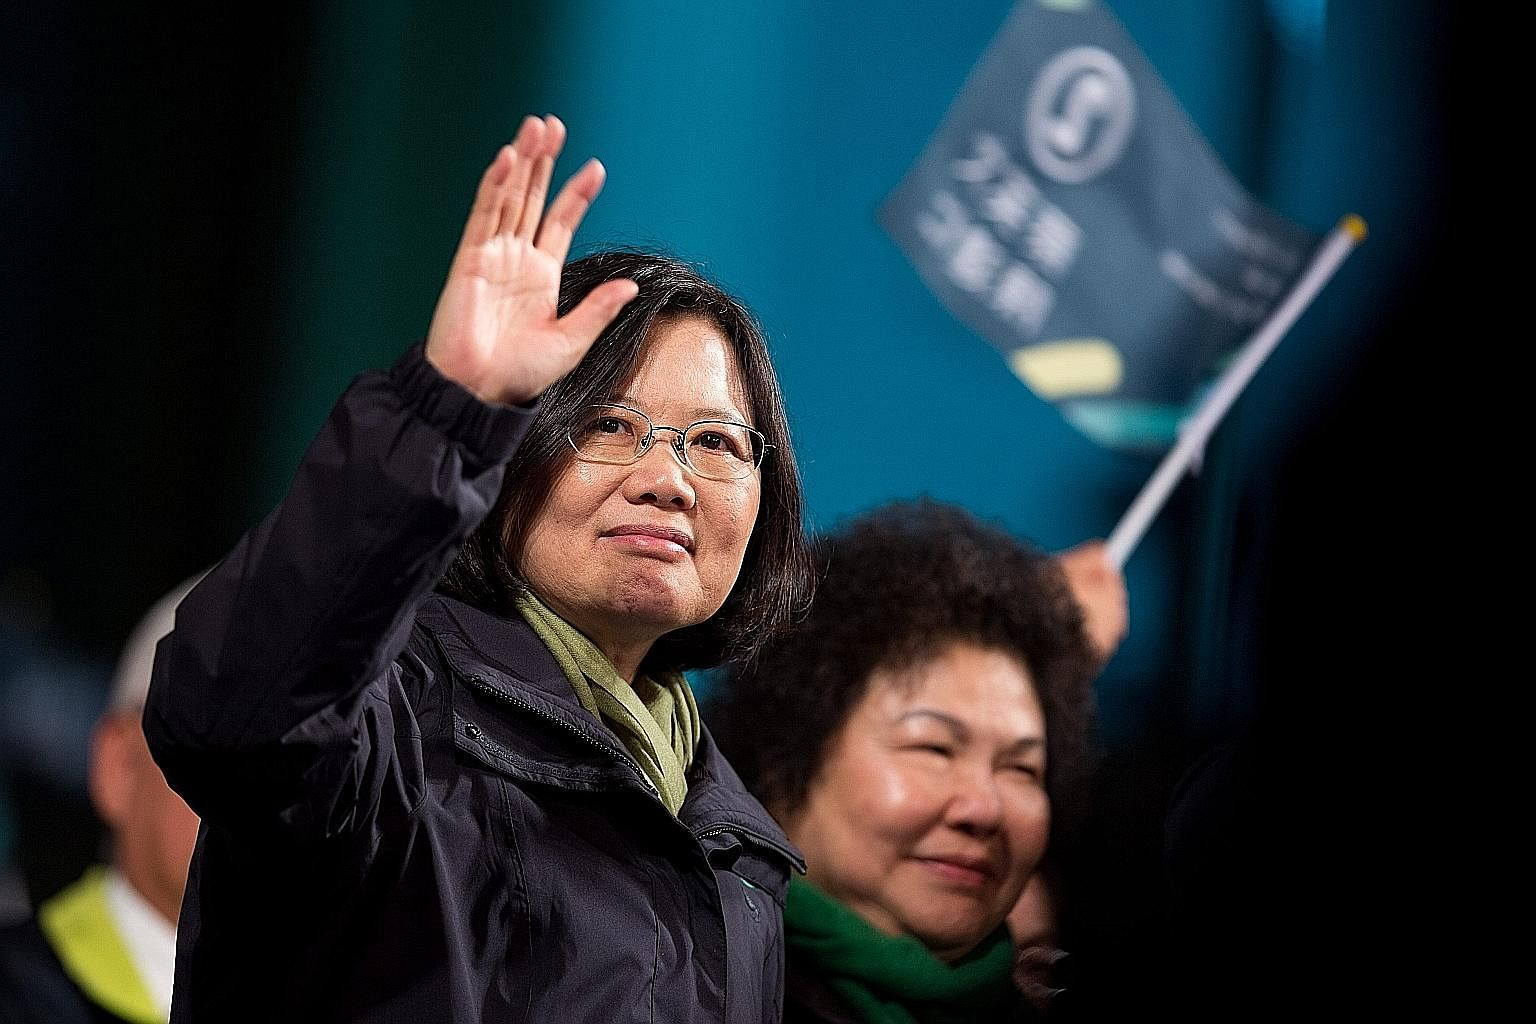 Ms Tsai waving to supporters after winning the presidential election last Saturday. She is the first woman without political lineage in Asia to head a government.